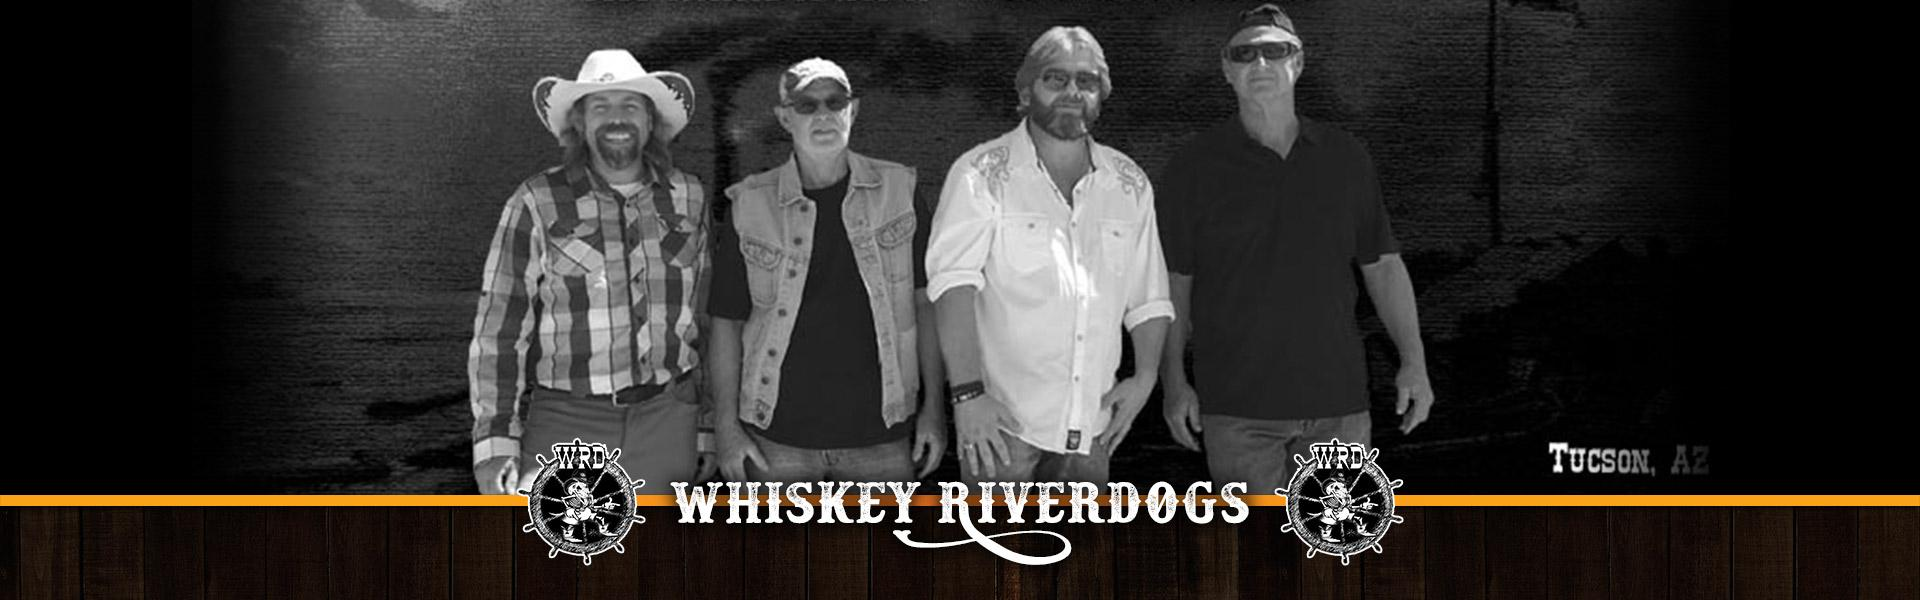 Whiskey Riverdogs Tucson Country Music